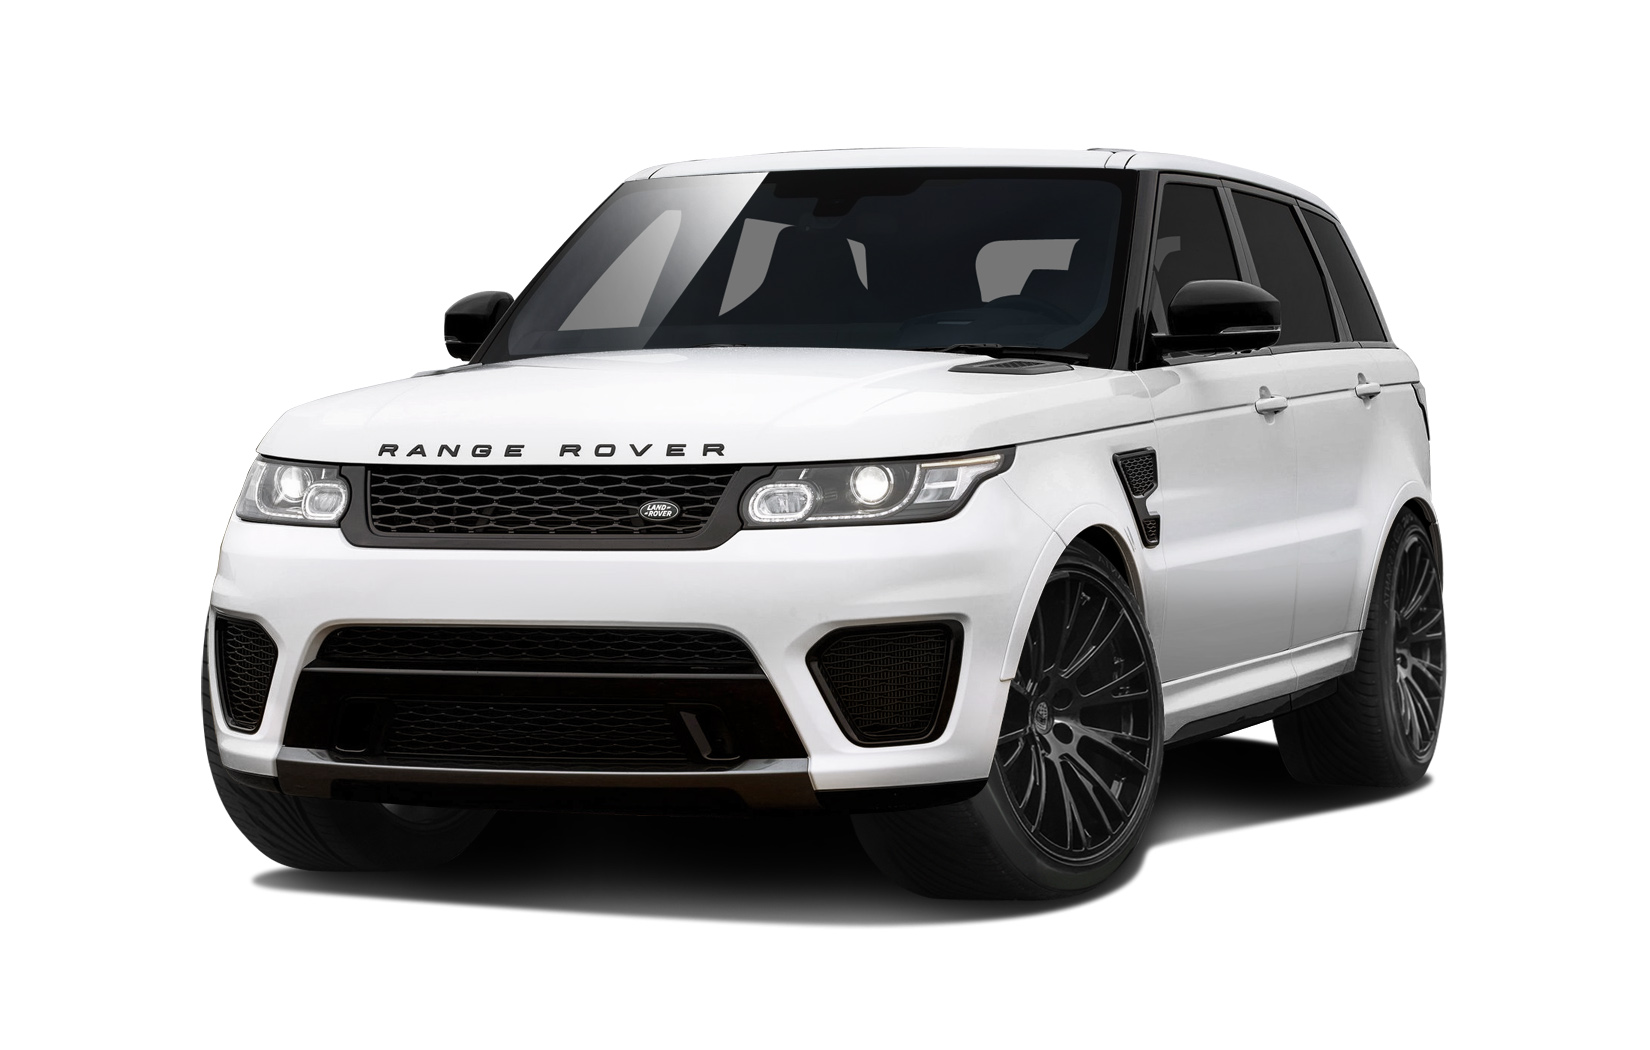 2014 2015 land rover range rover sport vaero svr look body. Black Bedroom Furniture Sets. Home Design Ideas